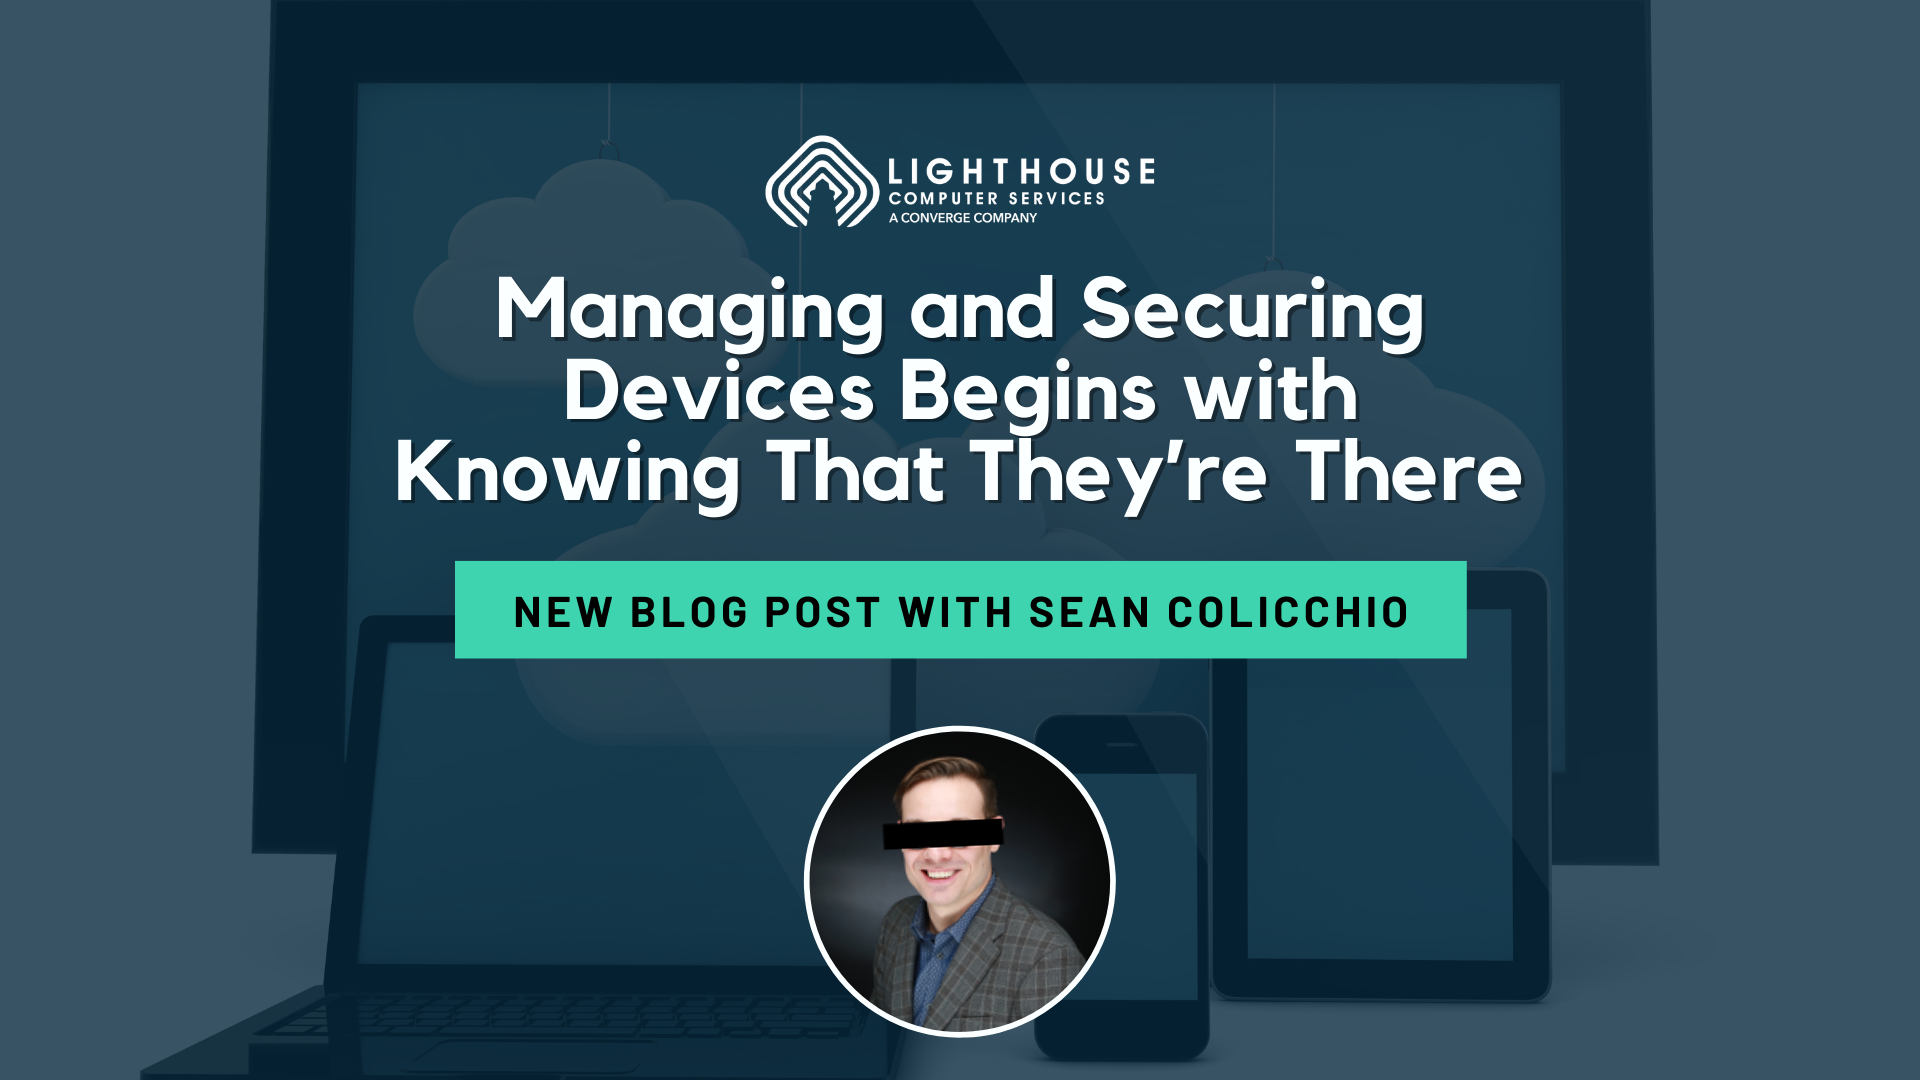 Managing and Securing Devices Begins With Knowing That They're There